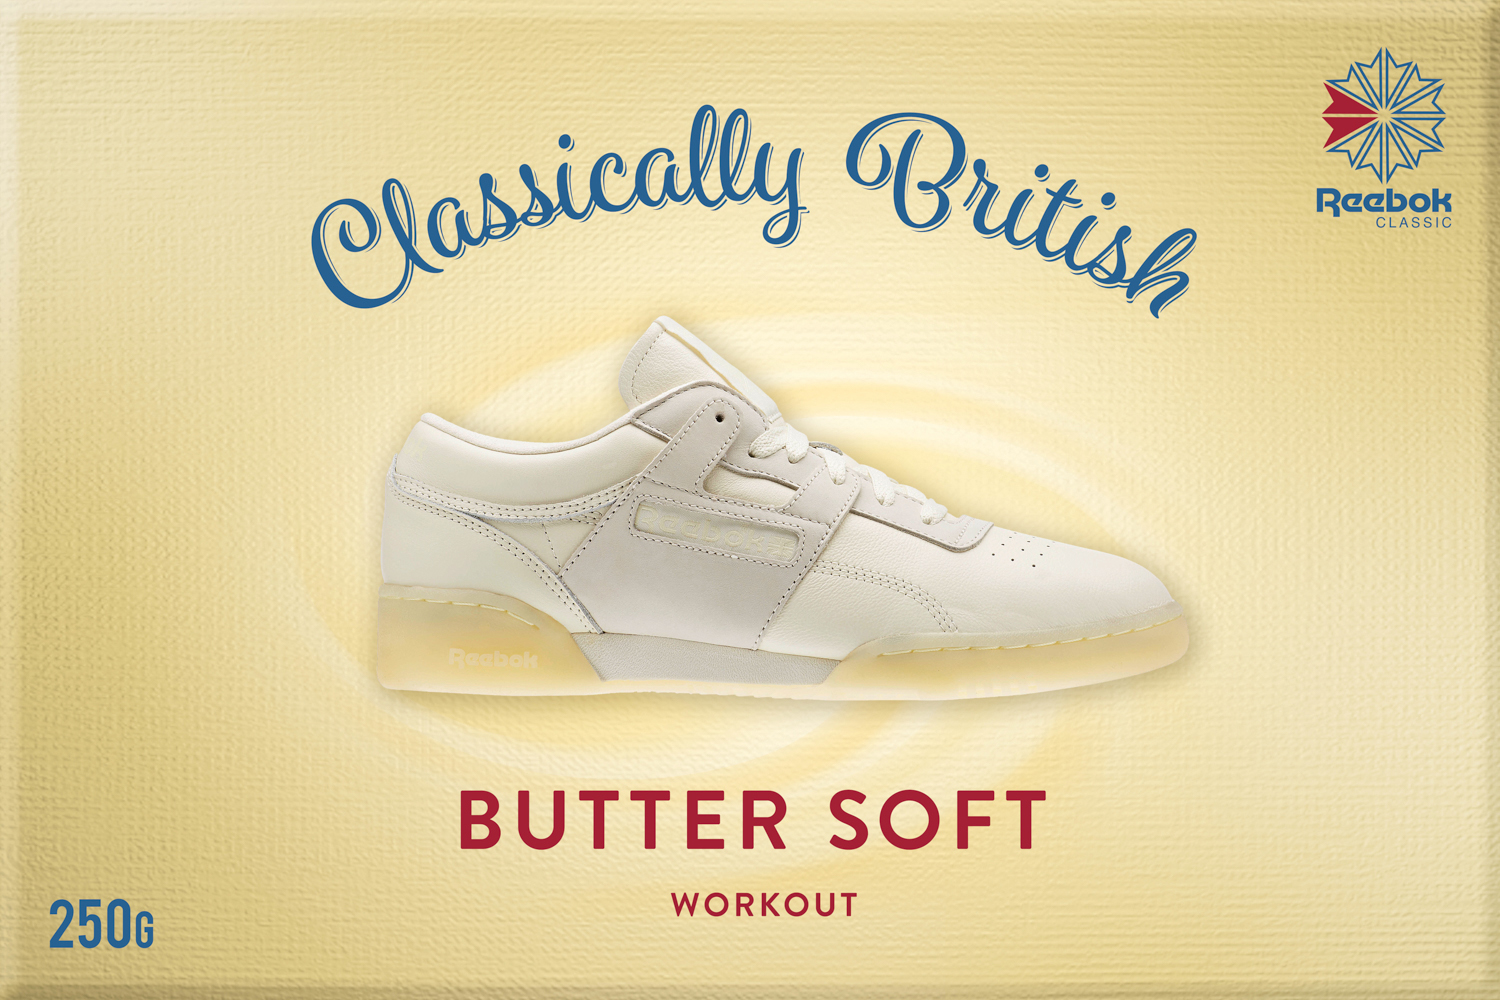 Reebok Butter Soft Pack - TRENDS periodical